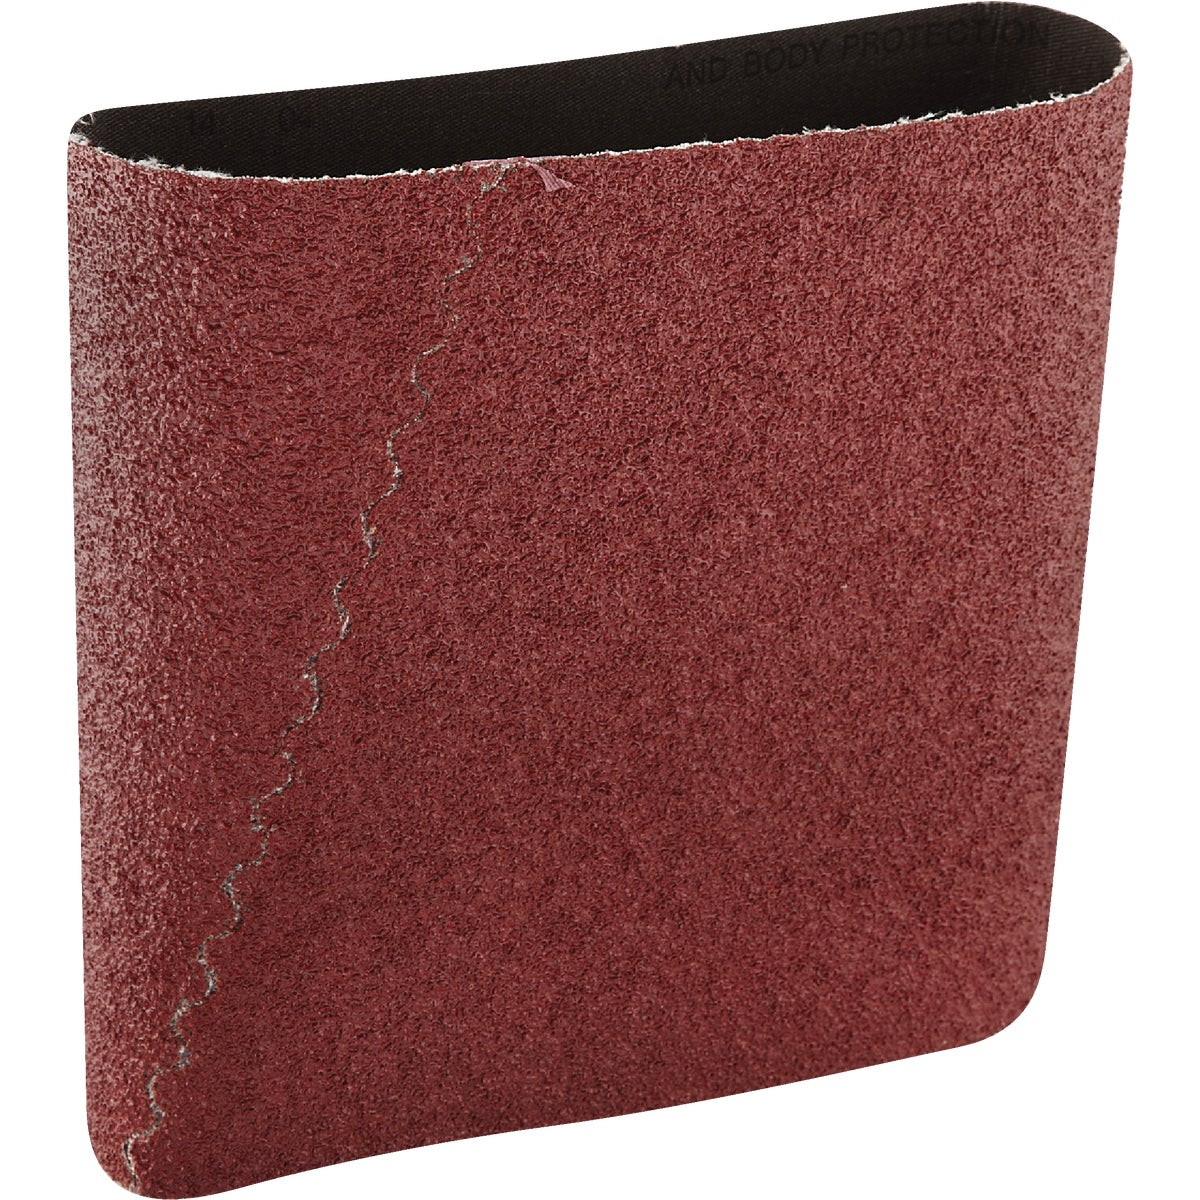 60G FLOOR SANDING BELT - 018-881960 by Virginia Abrasives